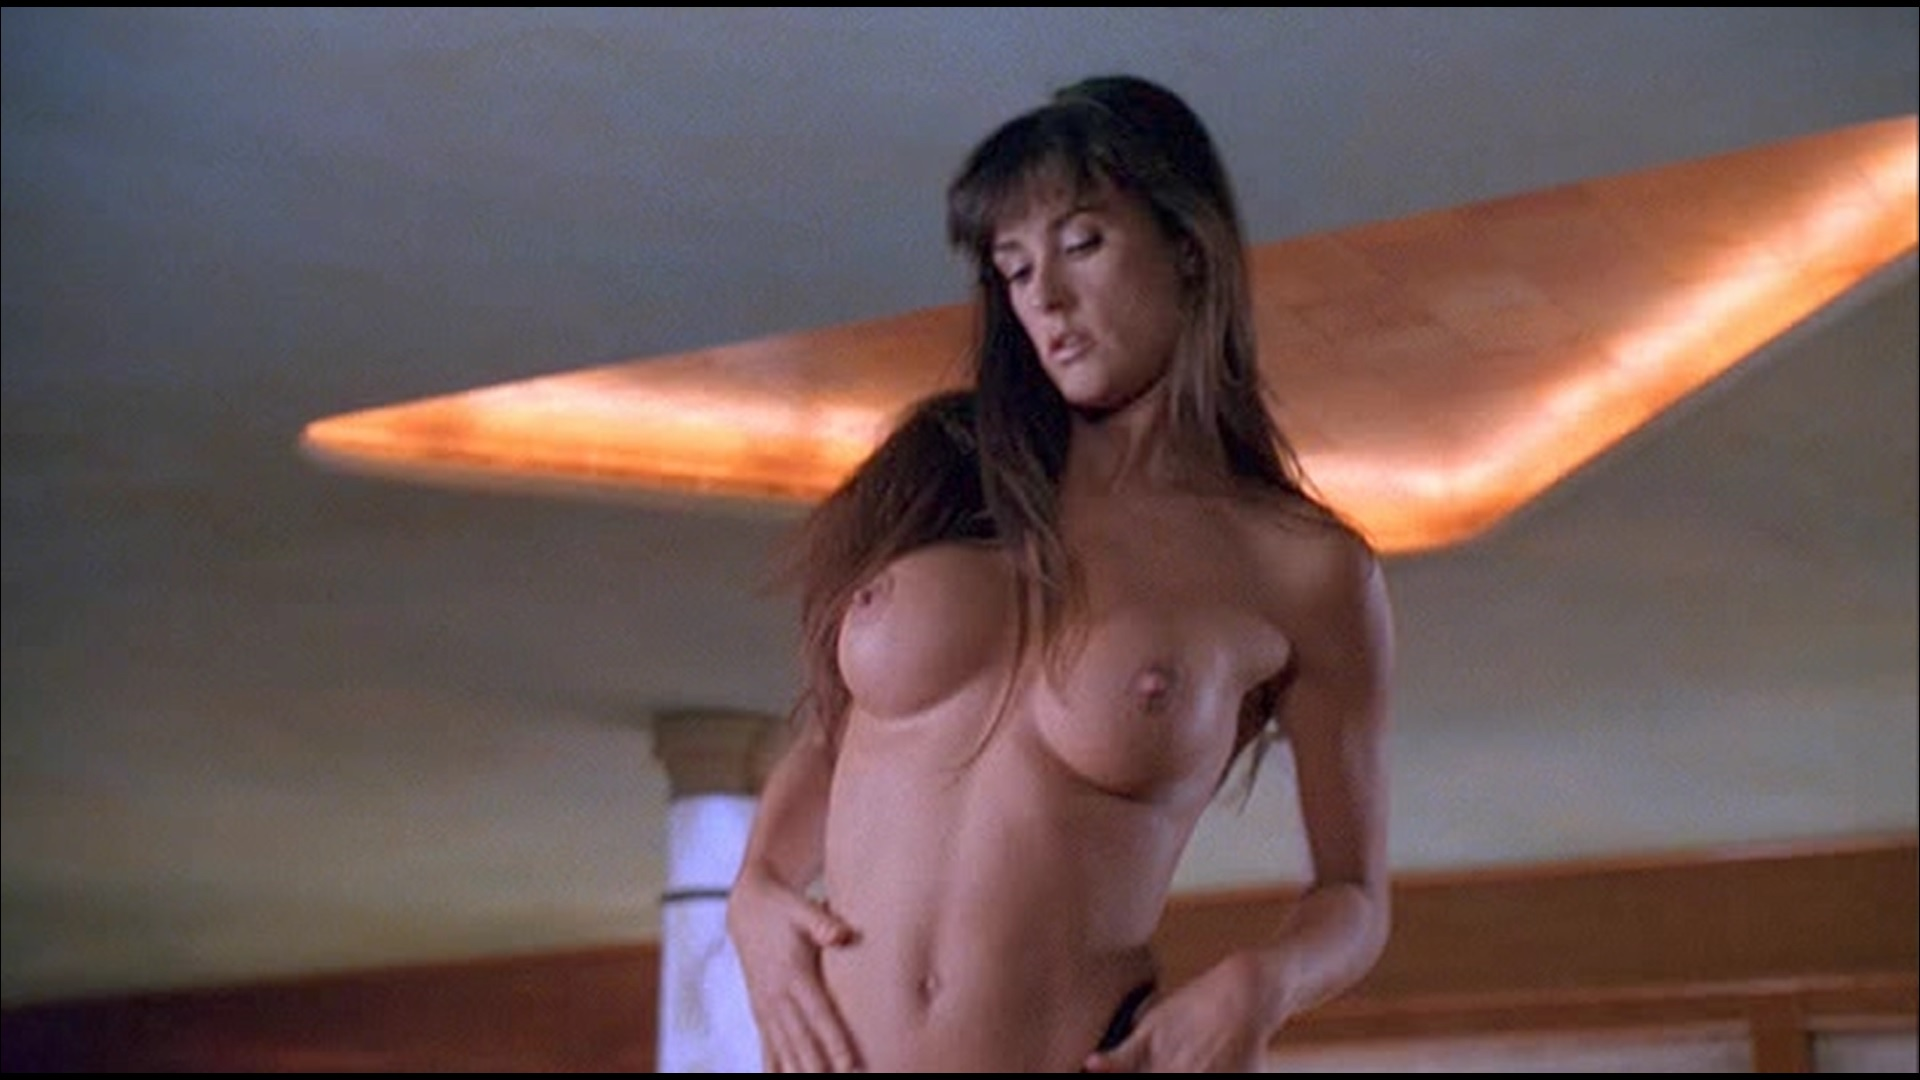 Can chyna doll hardcore sex for that